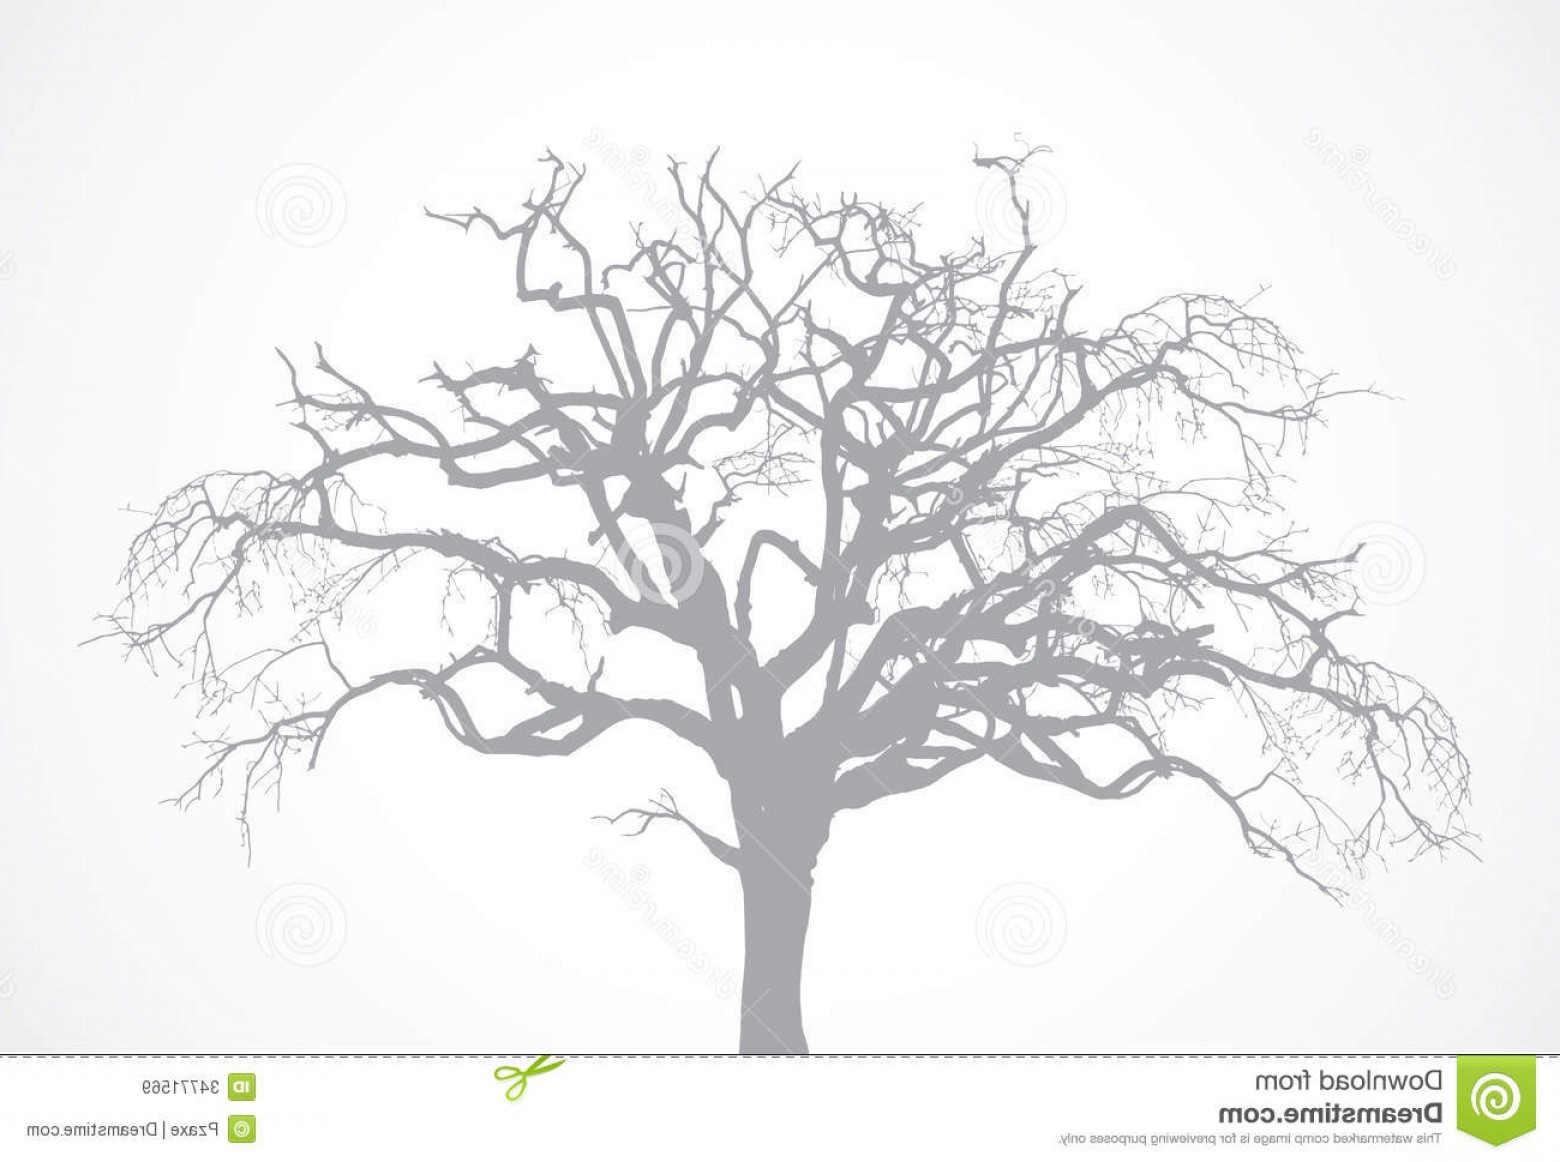 Oak Tree Silhouette Vector Graphics: Royalty Free Stock Images Vector Bare Old Dry Dead Tree Silhouette L Leaf Oak Crown Image